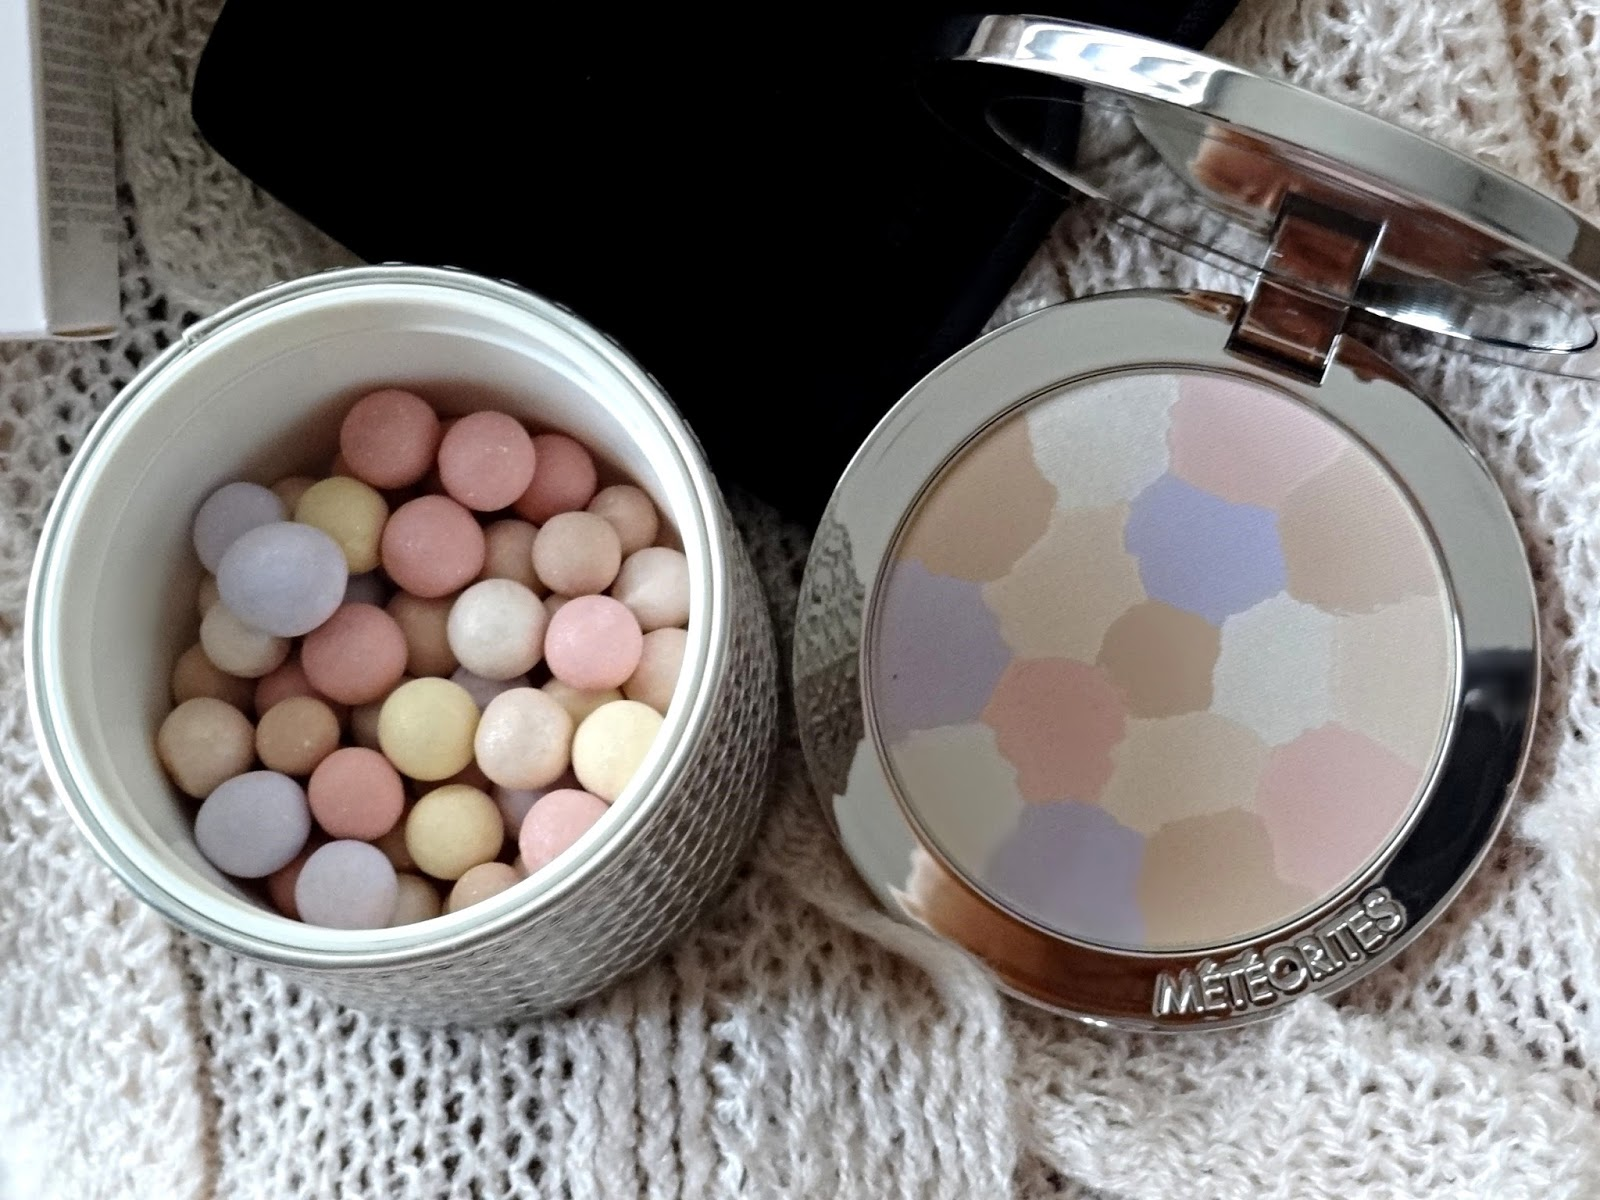 Guerlain Meteorites Compact Medium 03 compared with the Guerlain Meteorites Pearls Medium 03